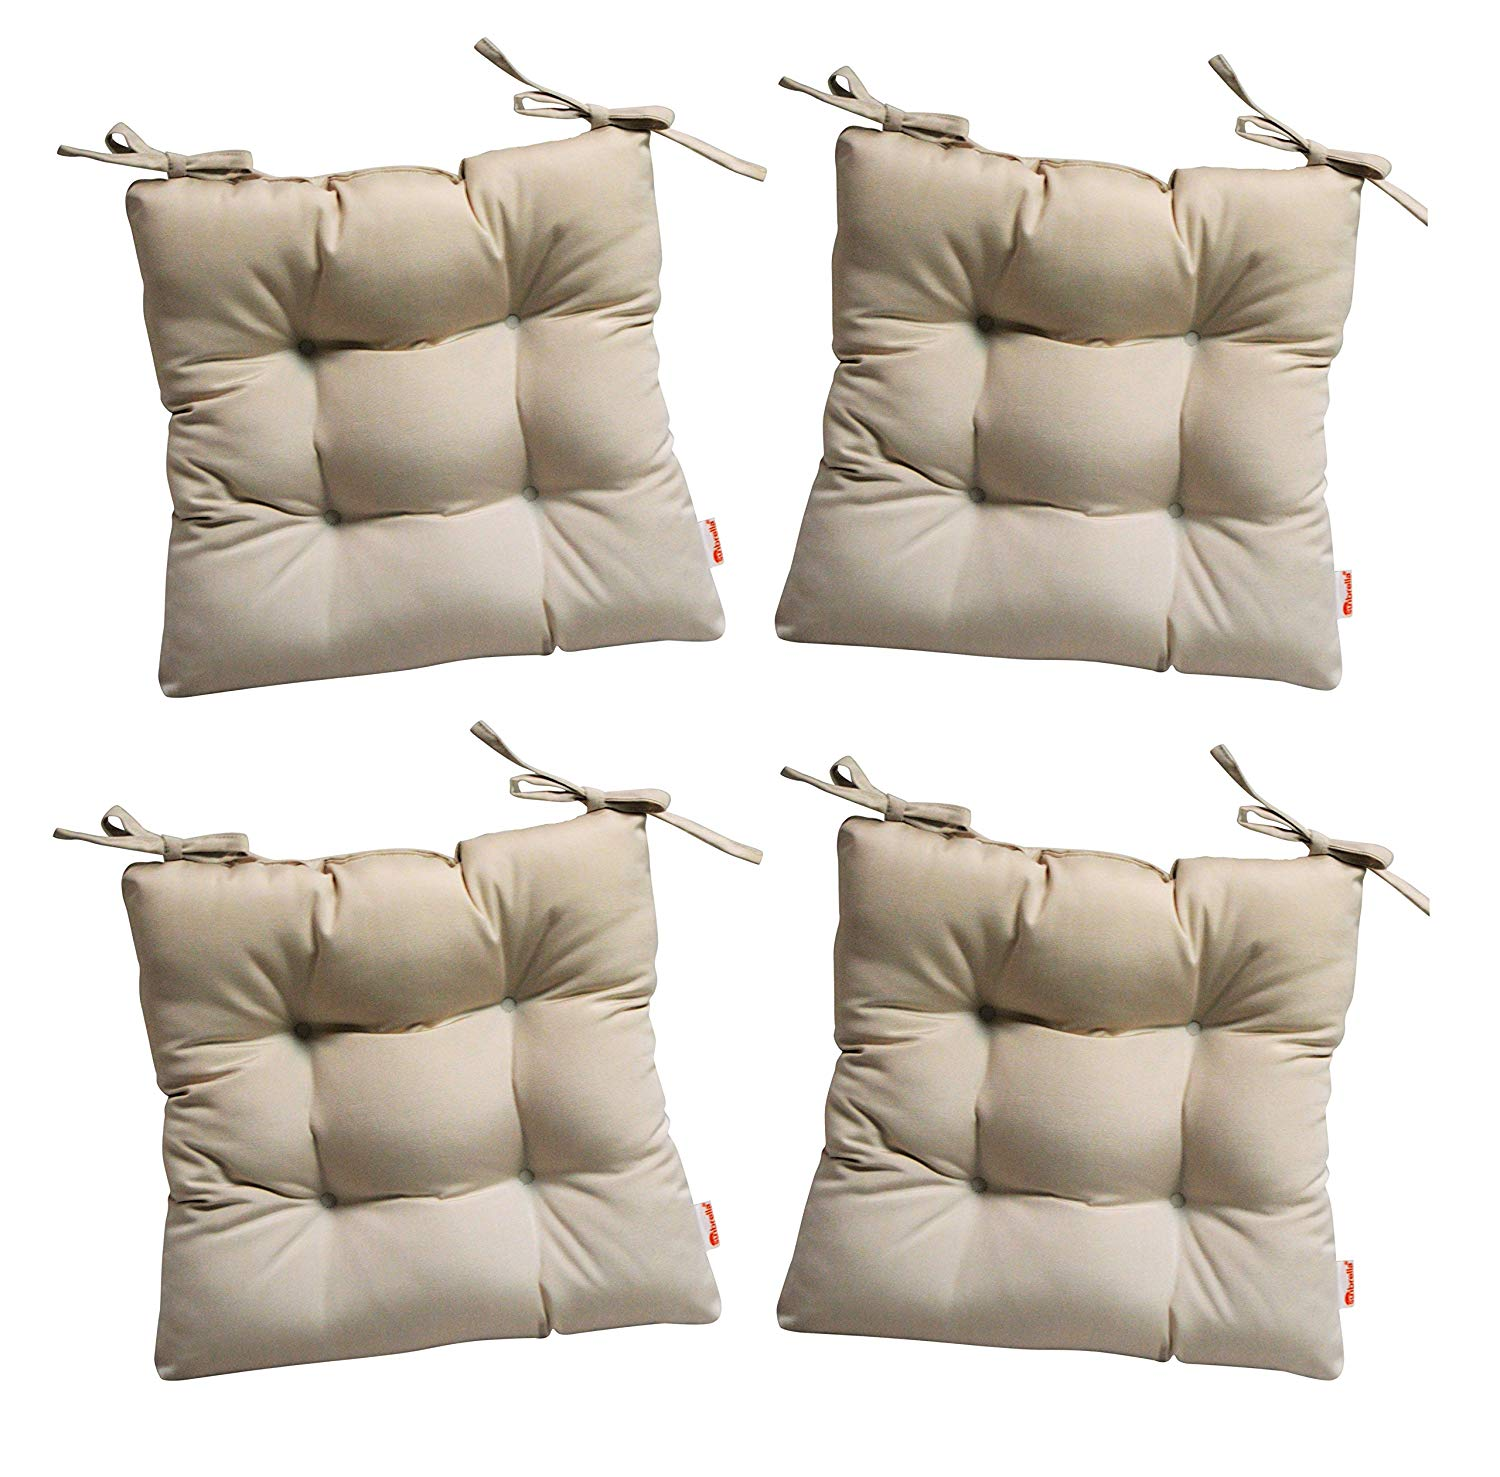 """RSH Décor Set of 4 - Indoor/Outdoor Sunbrella Canvas Canvas (Beige) Tufted Seat Cushions with Ties for Dining/Patio Chairs - Choose Size (21"""" x 21"""")"""